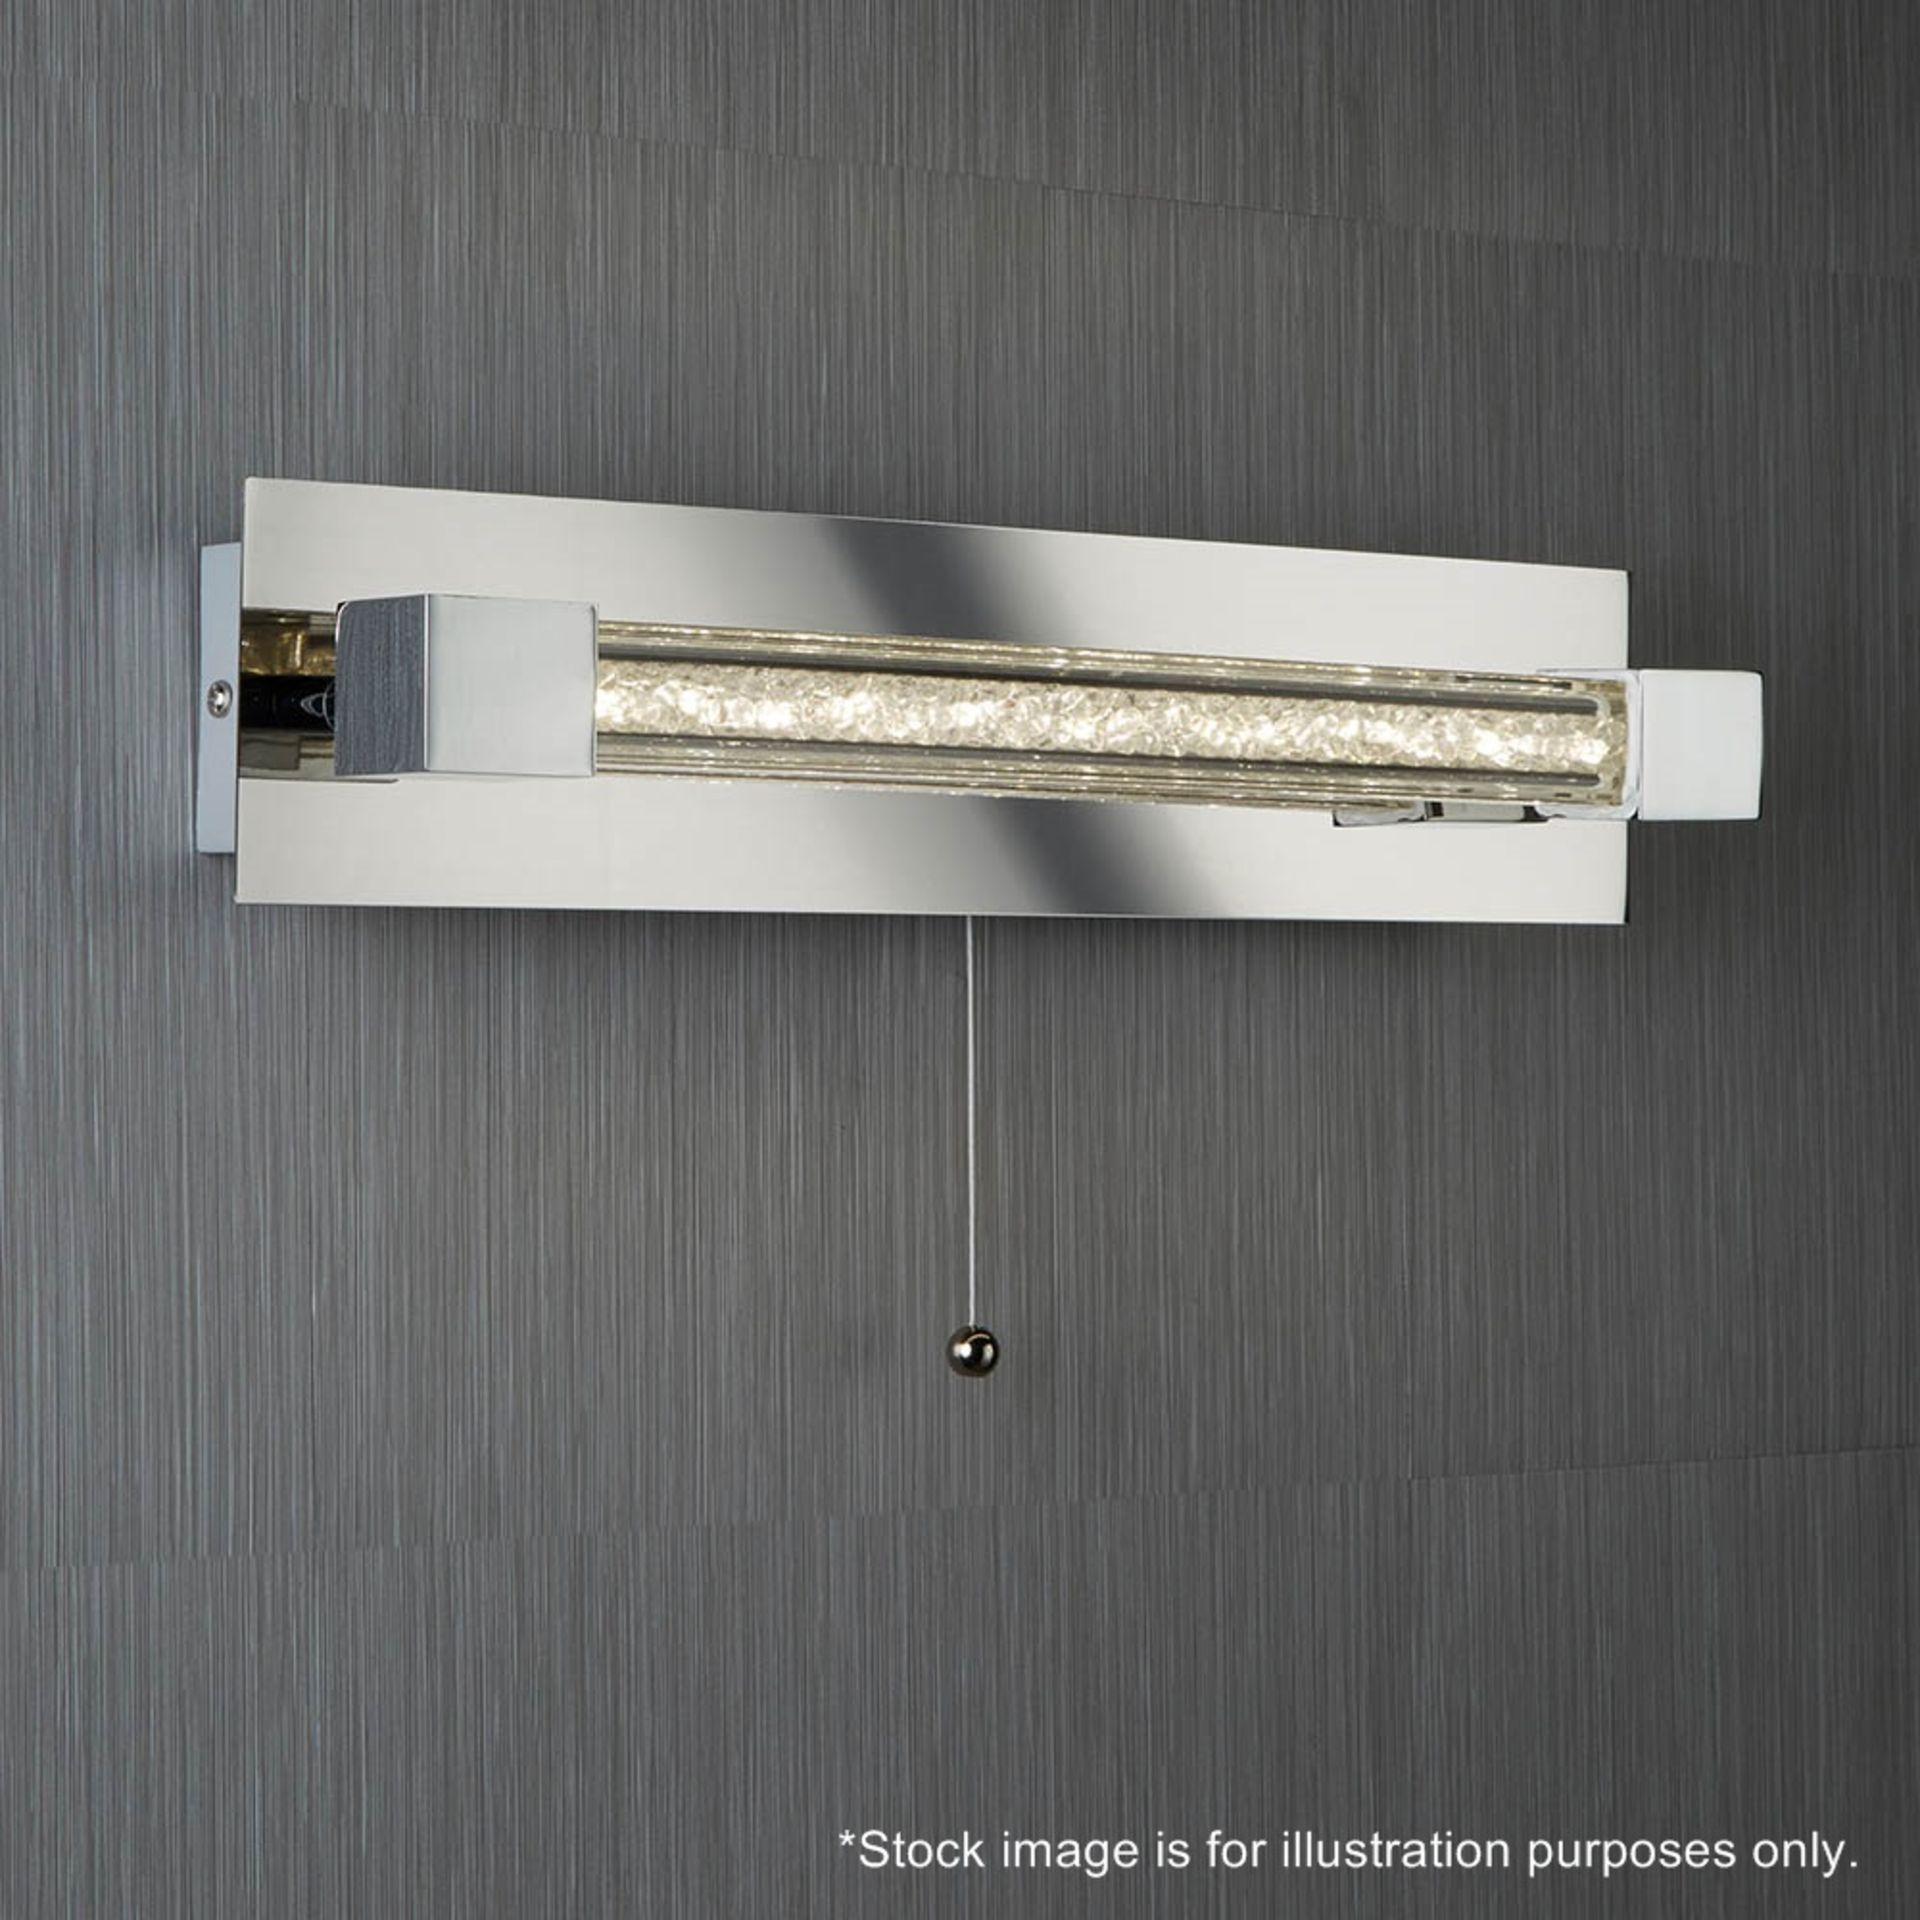 Lot 9186 - 1 x Searchlight Chrome LED Bathroom / Kitchen Wall Light with Clear Crystal Glass Bar - IP44- Boxed